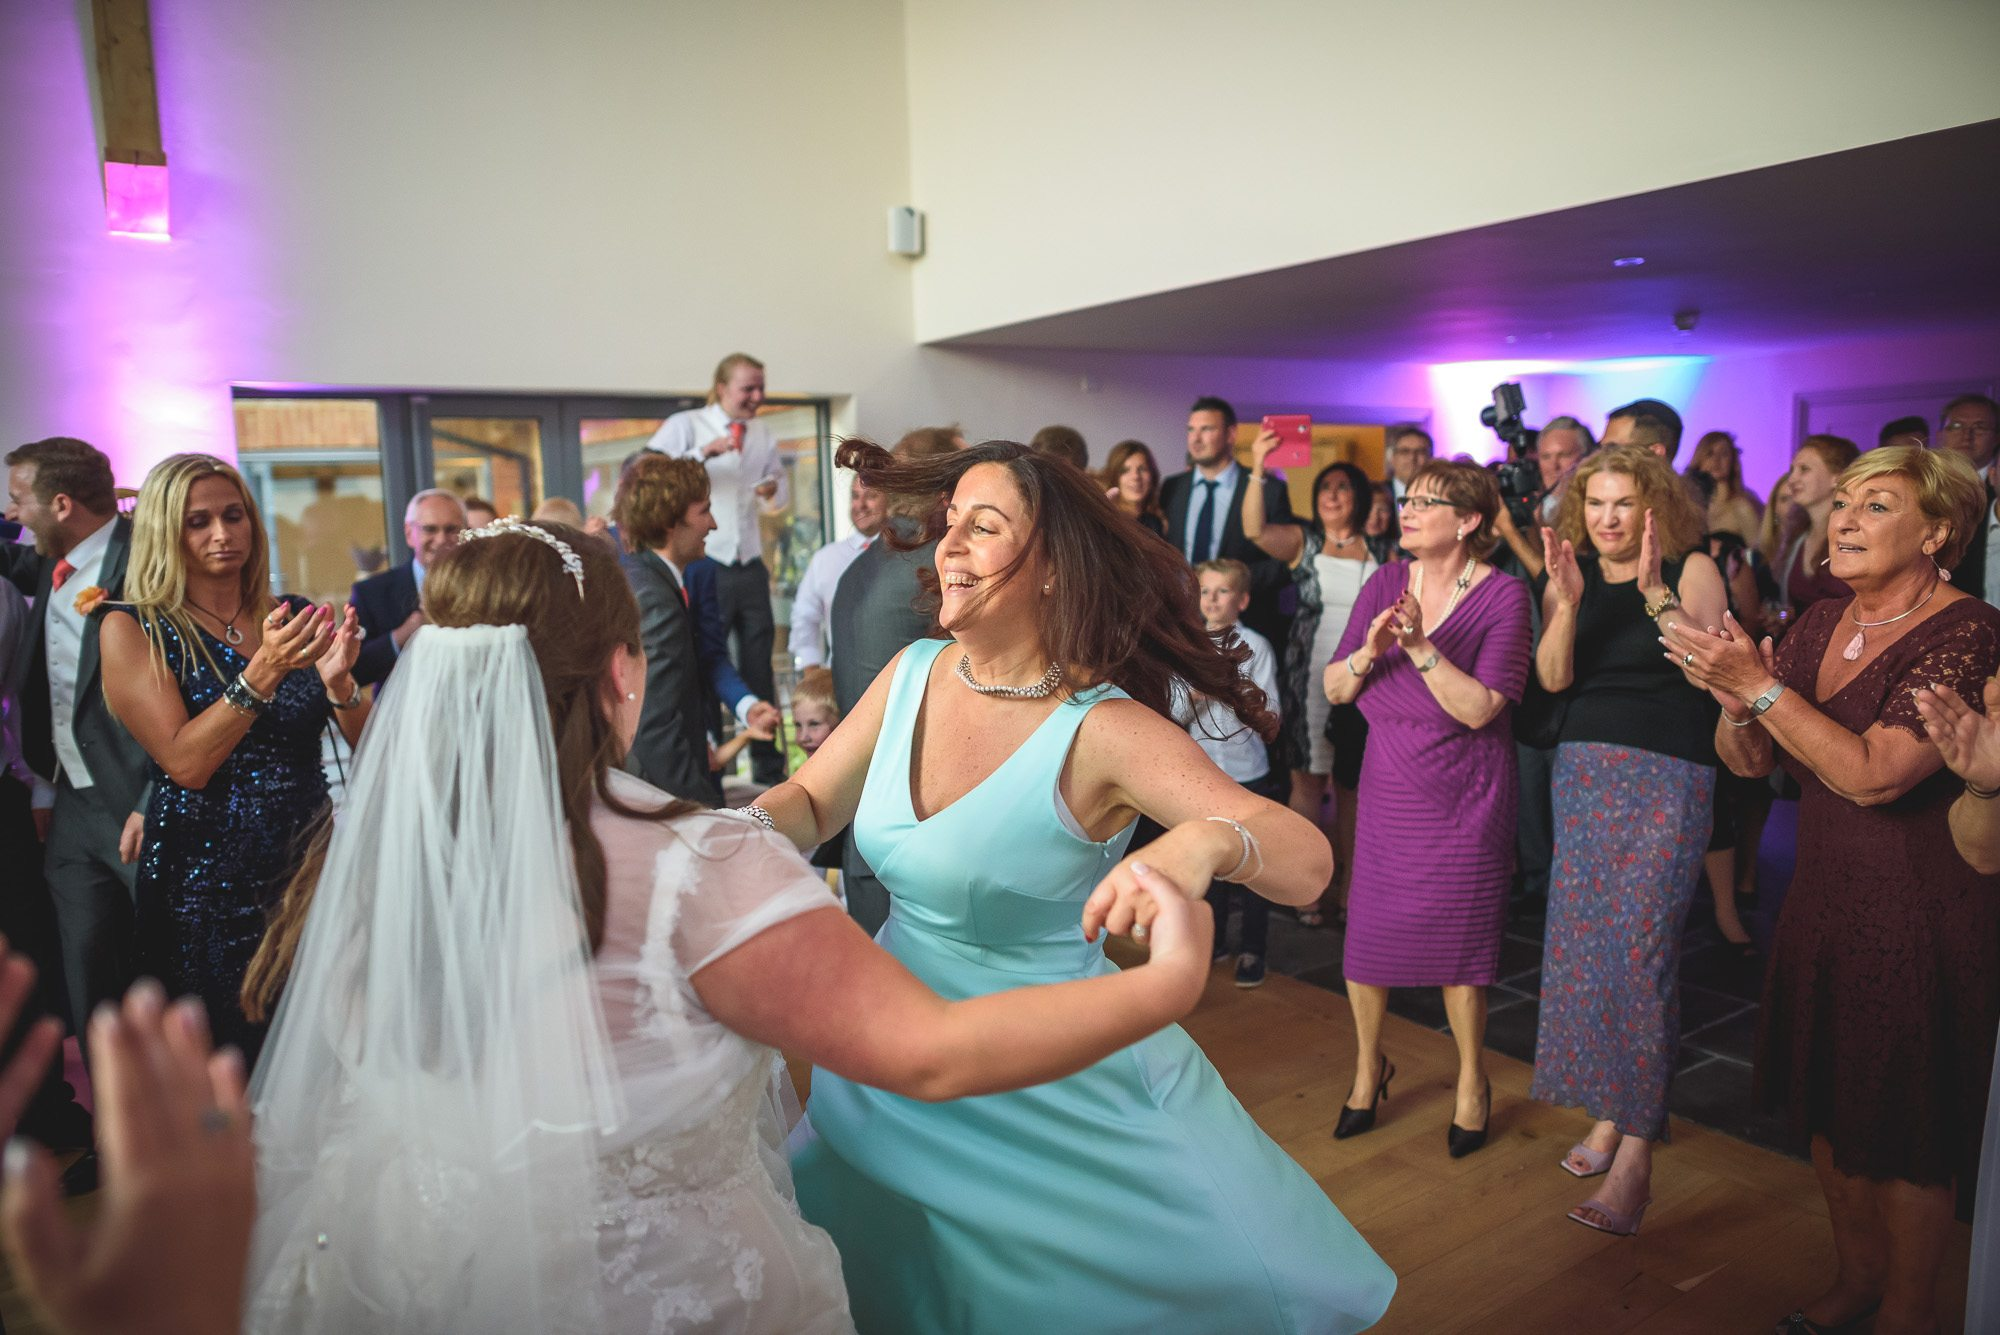 Lauren and Lee - Millbridge Court wedding photography (166 of 166)